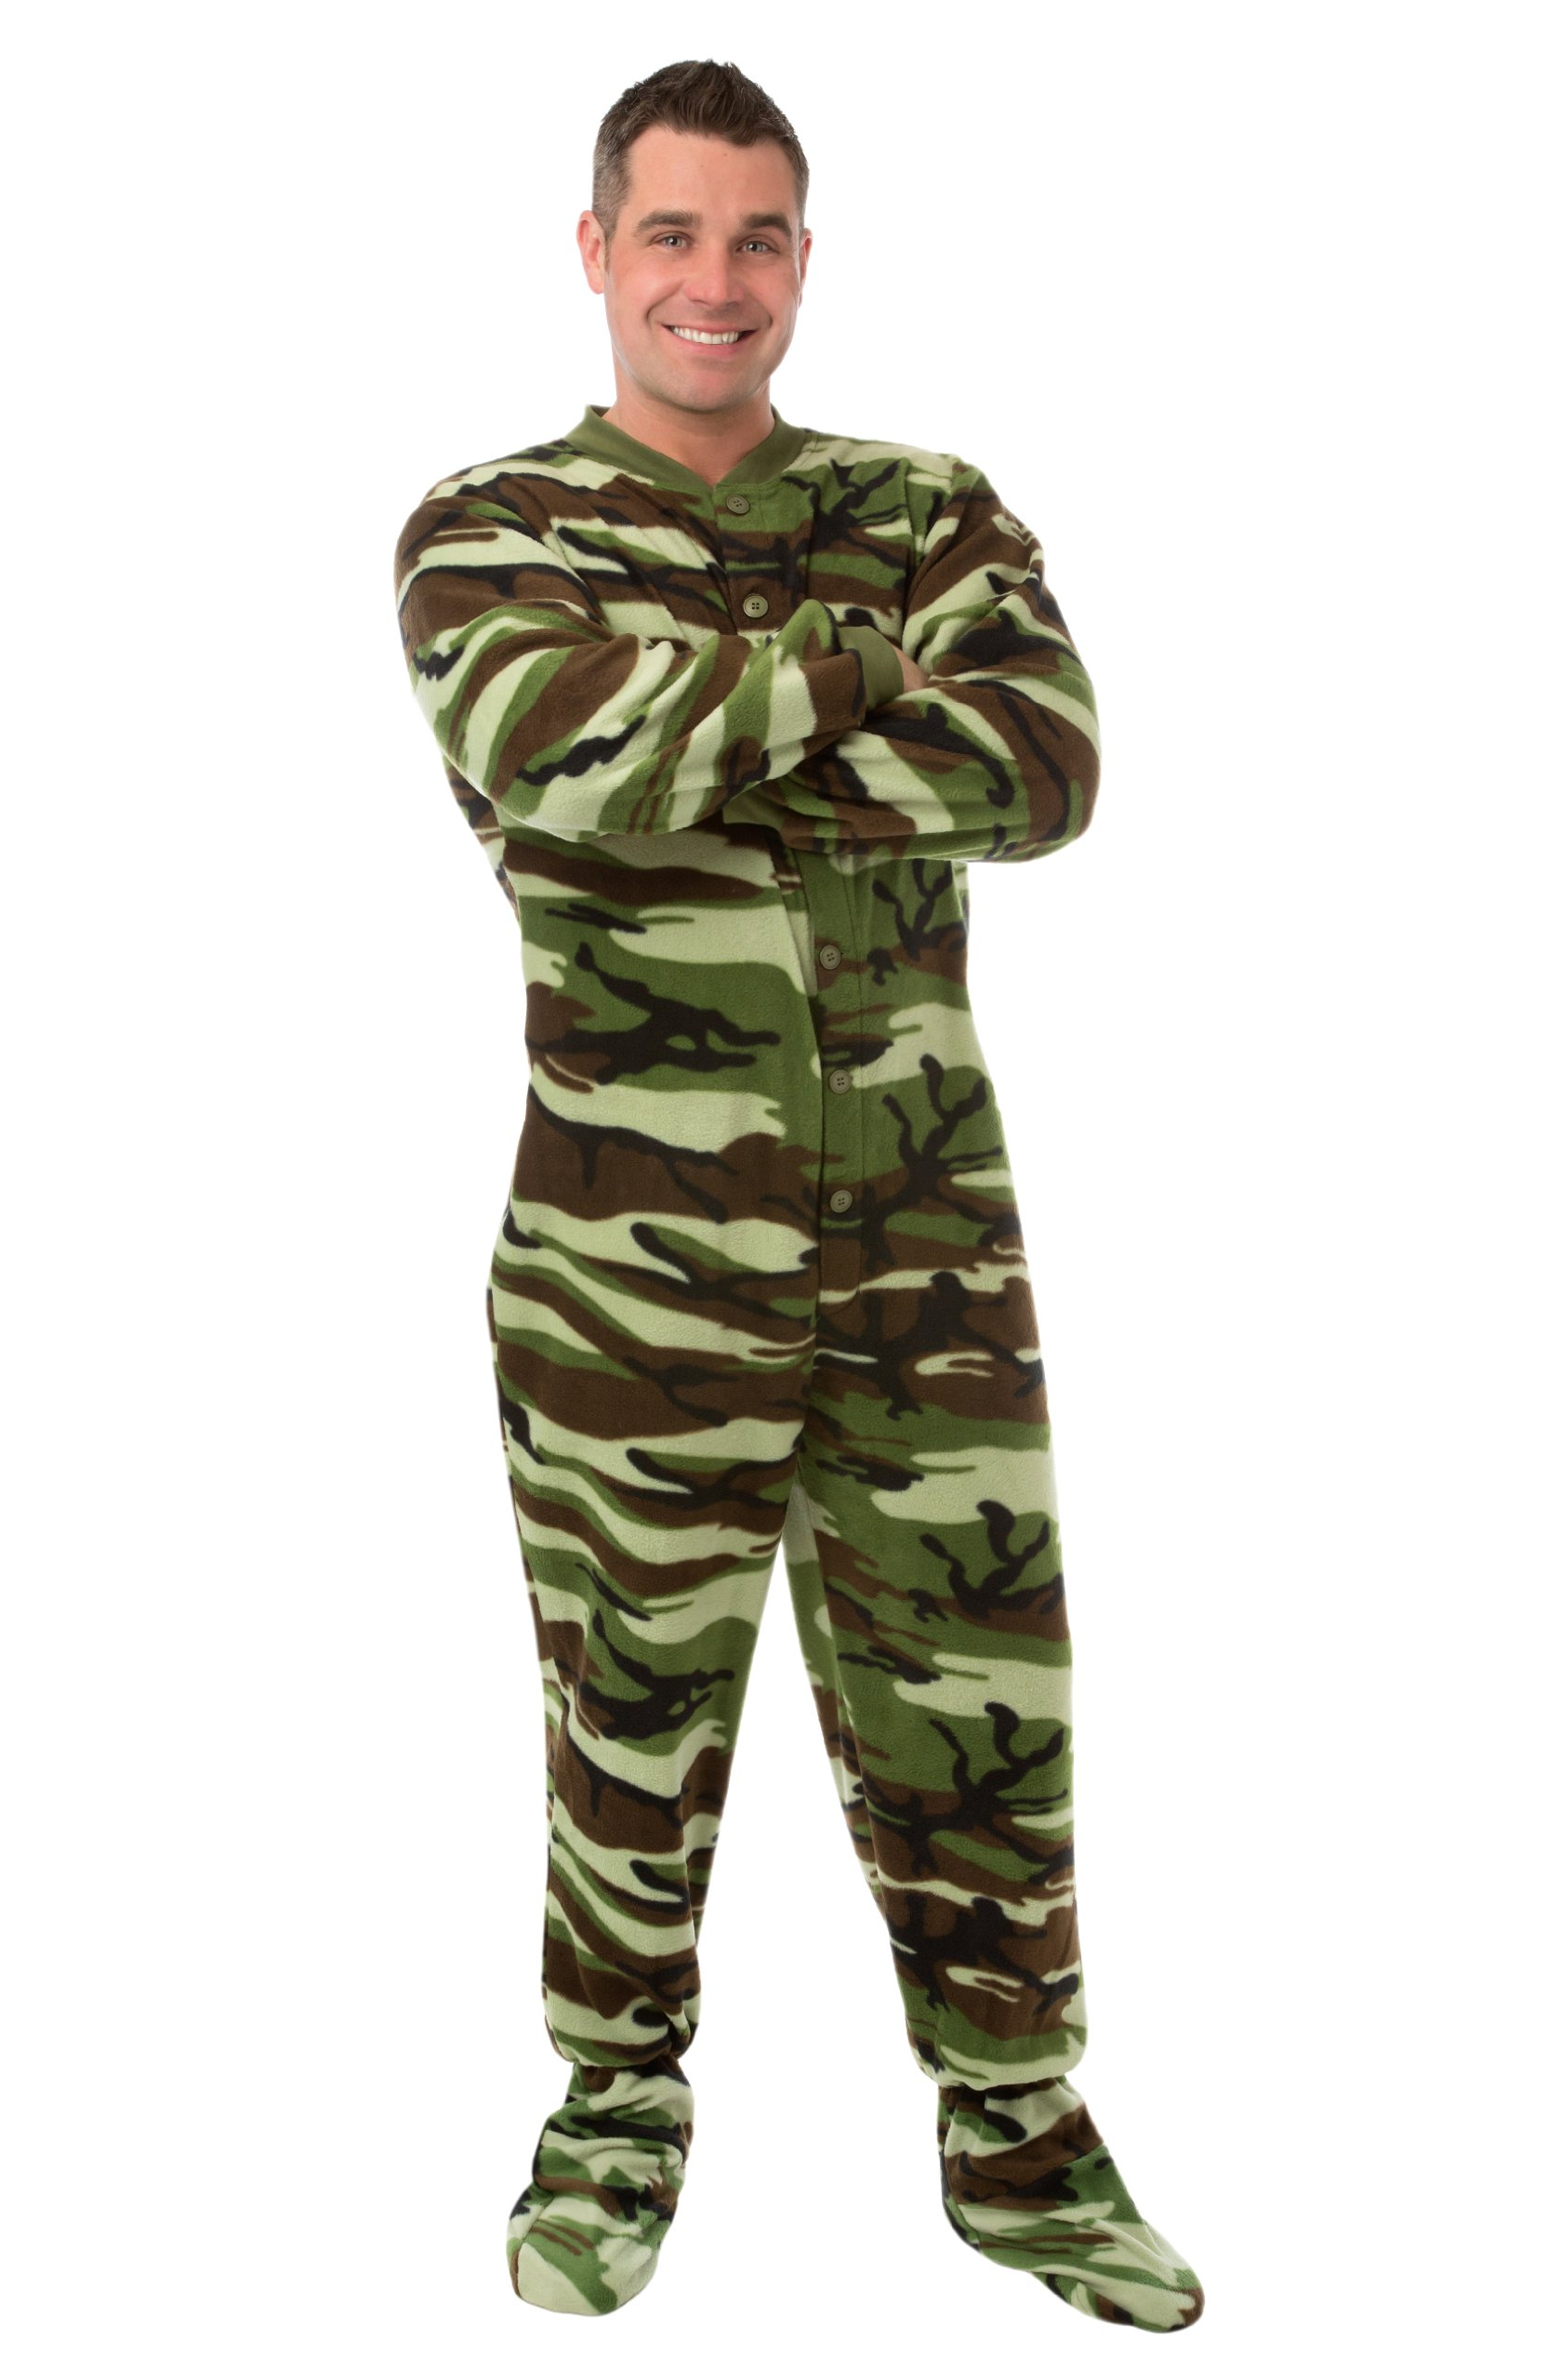 Pjs green camo micro polar fleece adult footed pajamas with drop seat